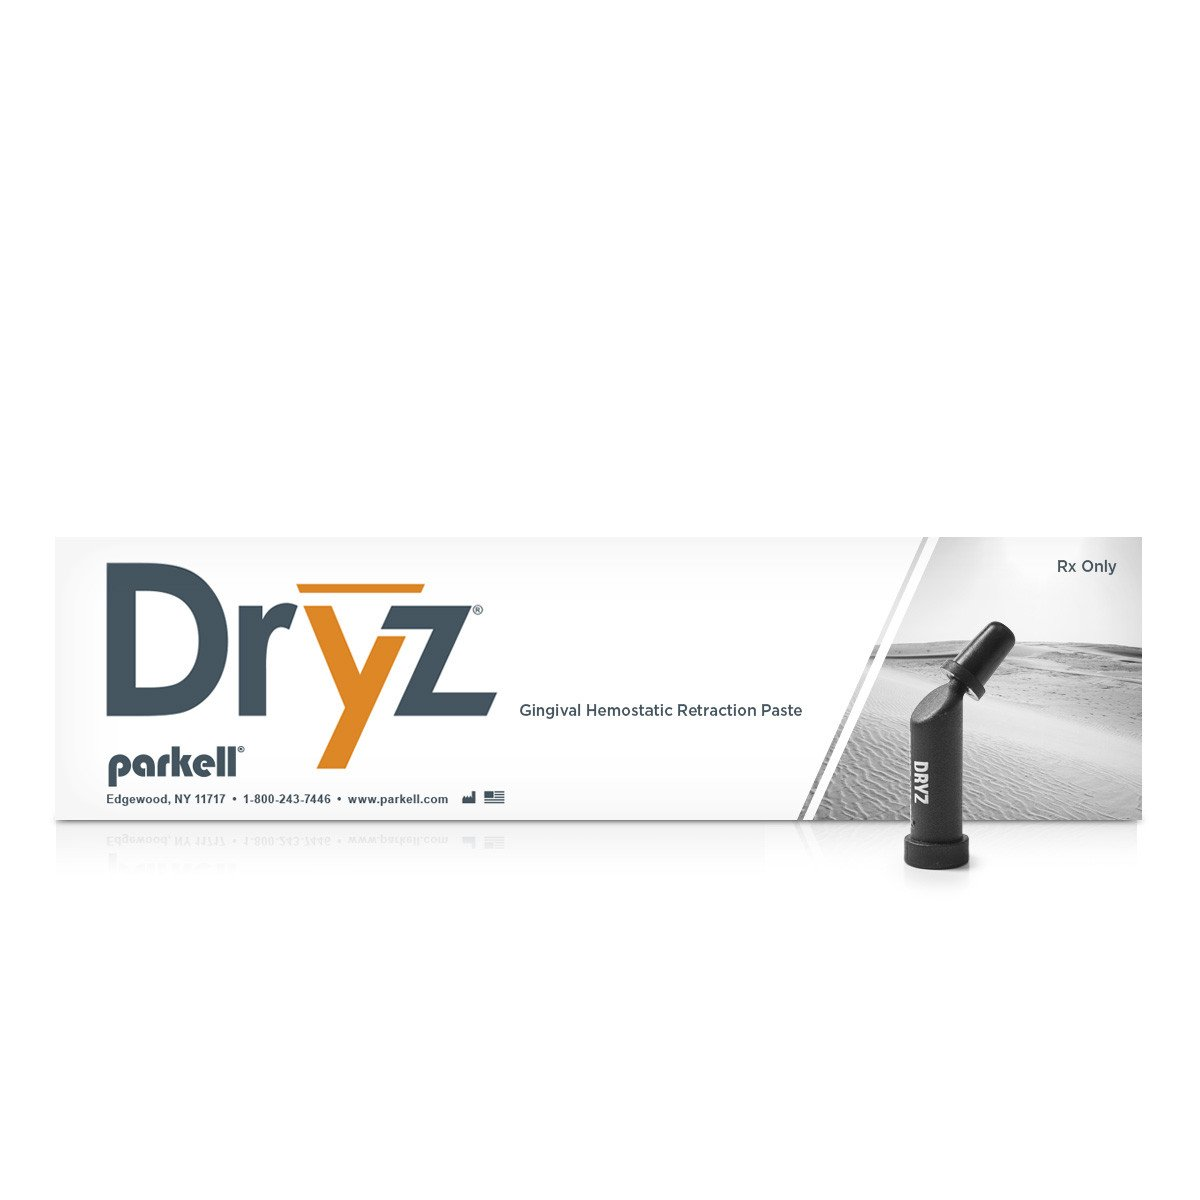 Dryz Gingival Hemostatic Retraction Paste Unit Dose Capsule, 30 x 0.24 gr Capsules (S183) by WDS